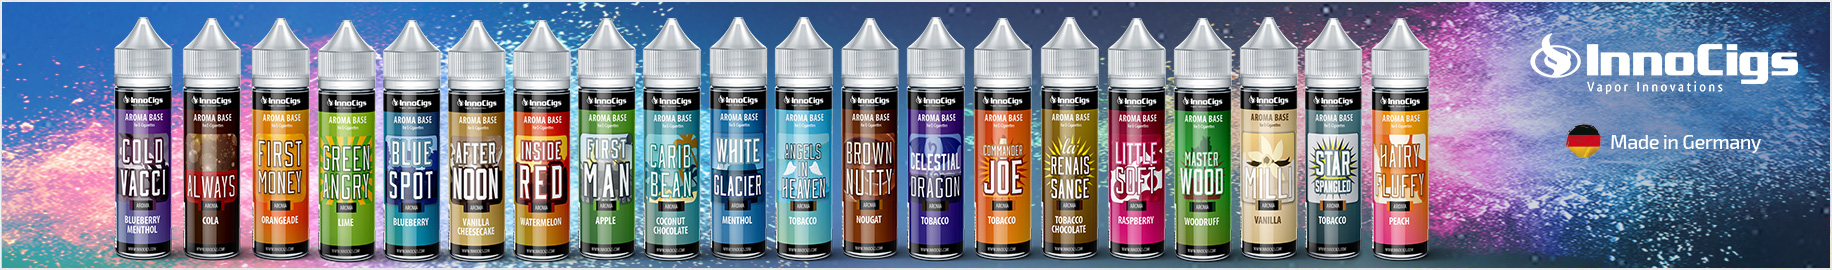 InnoCigs Shake and Vape Liquid